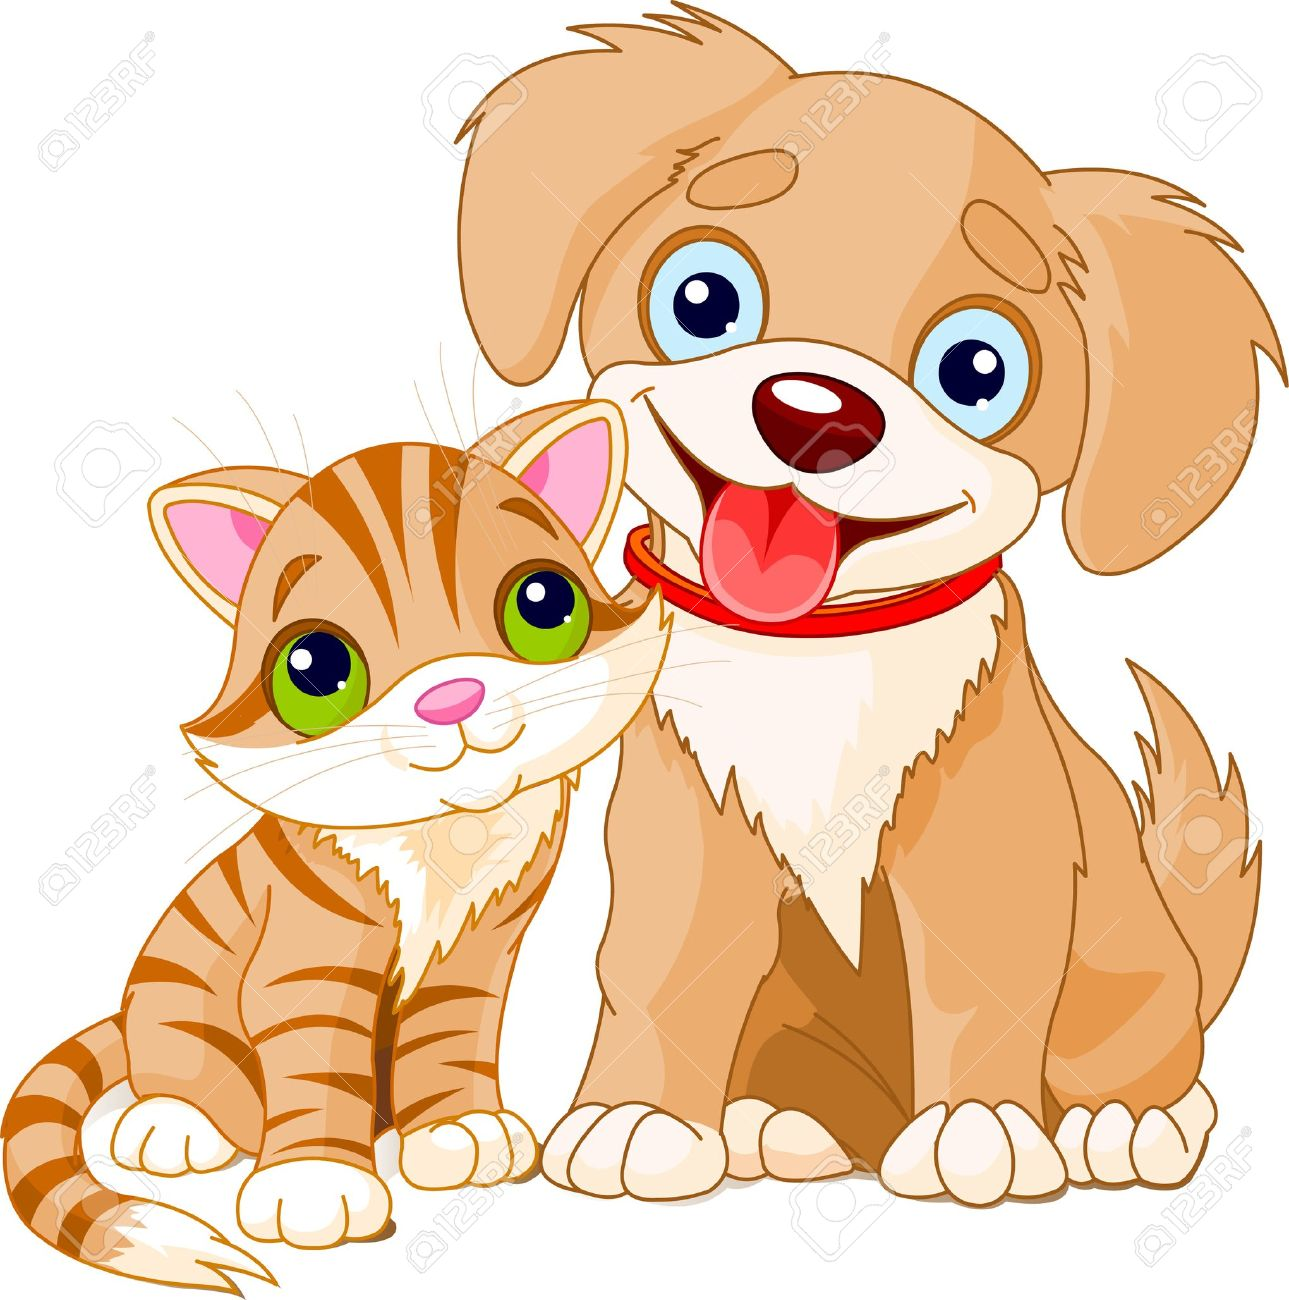 Sketch clipart puppy kitten And Clip Kitten Kitten Kitten